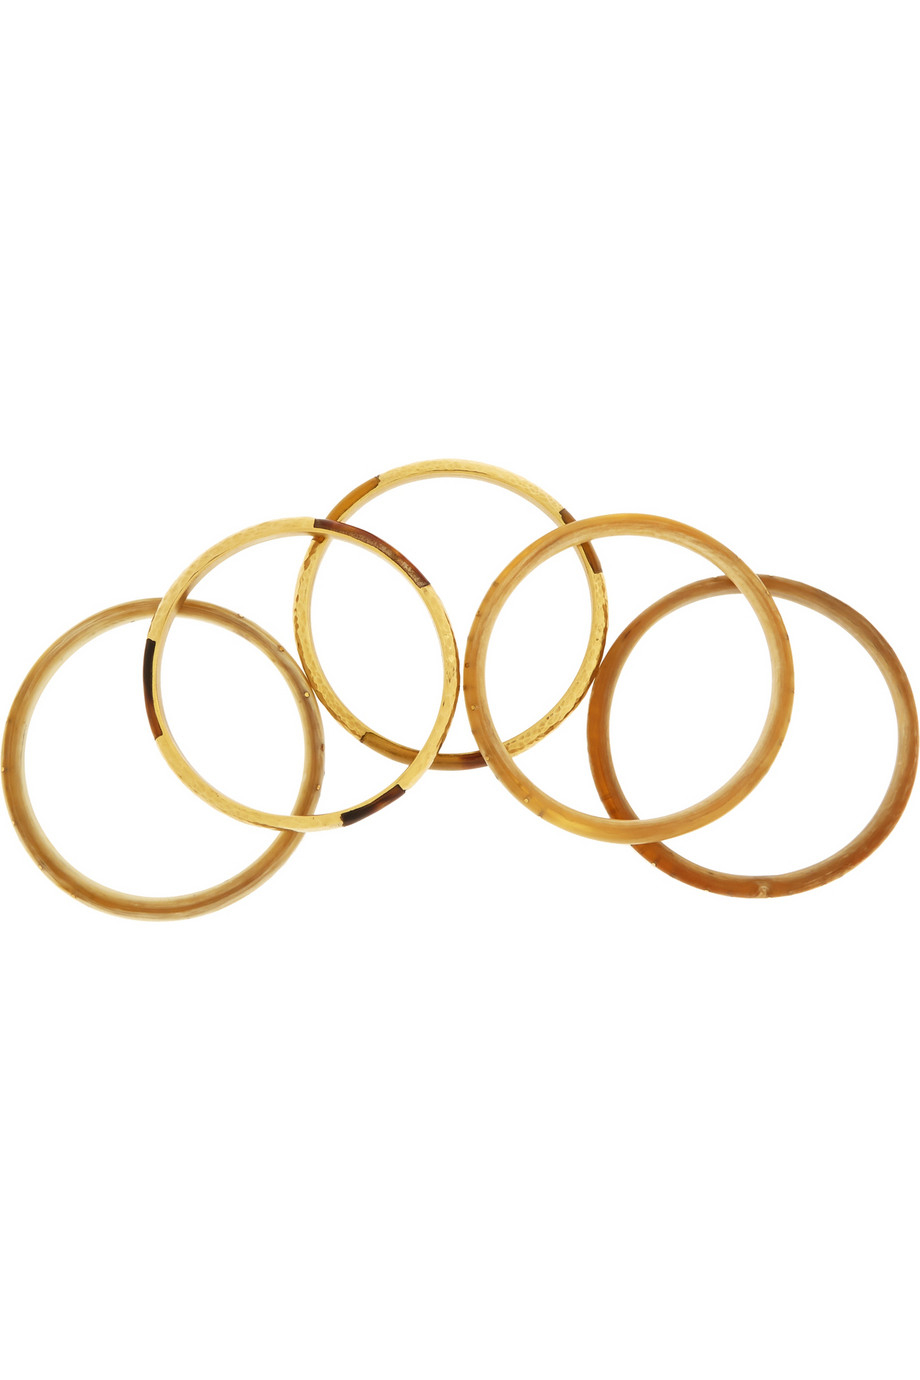 Ashley Pittman Nuru Set Of Five Horn And Gold-Tone Bangles in Brown (Metallic)